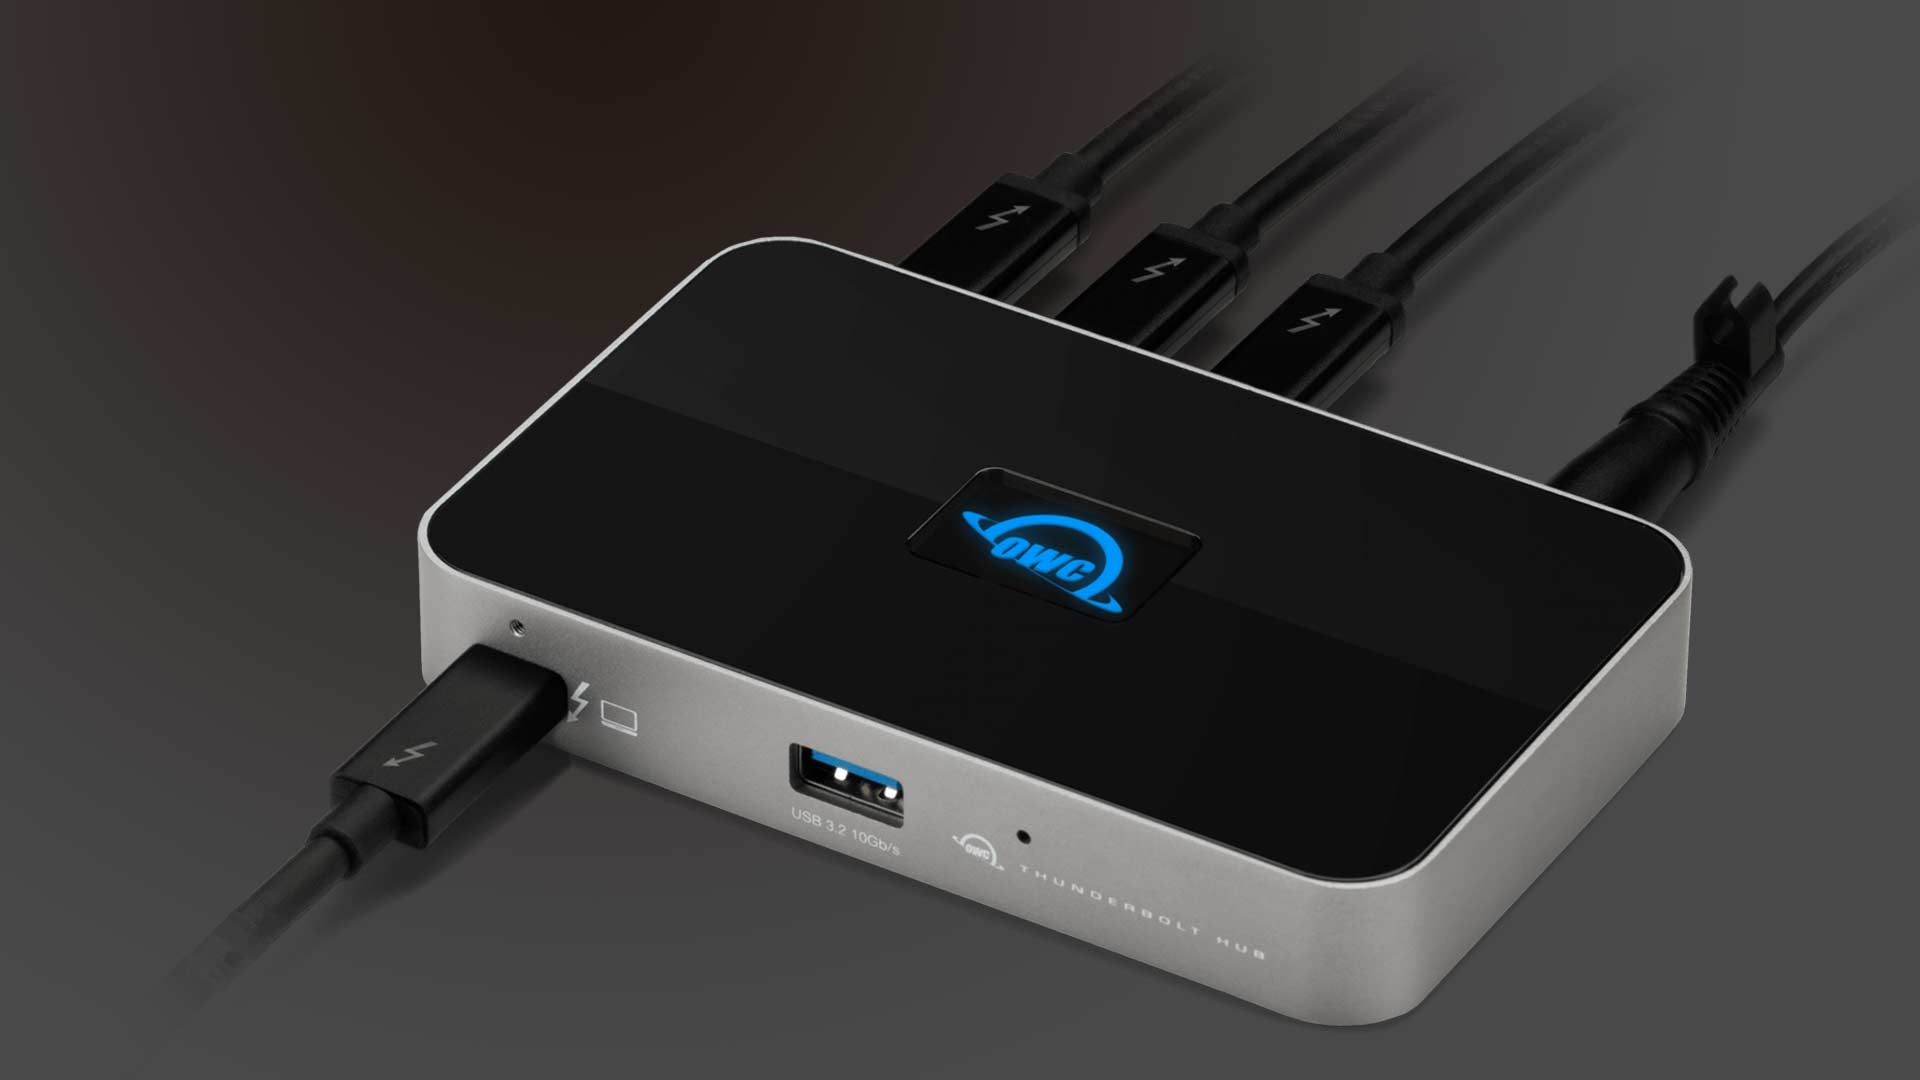 Connect Multiple Thunderbolt Devices with the OWC Thunderbolt Hub